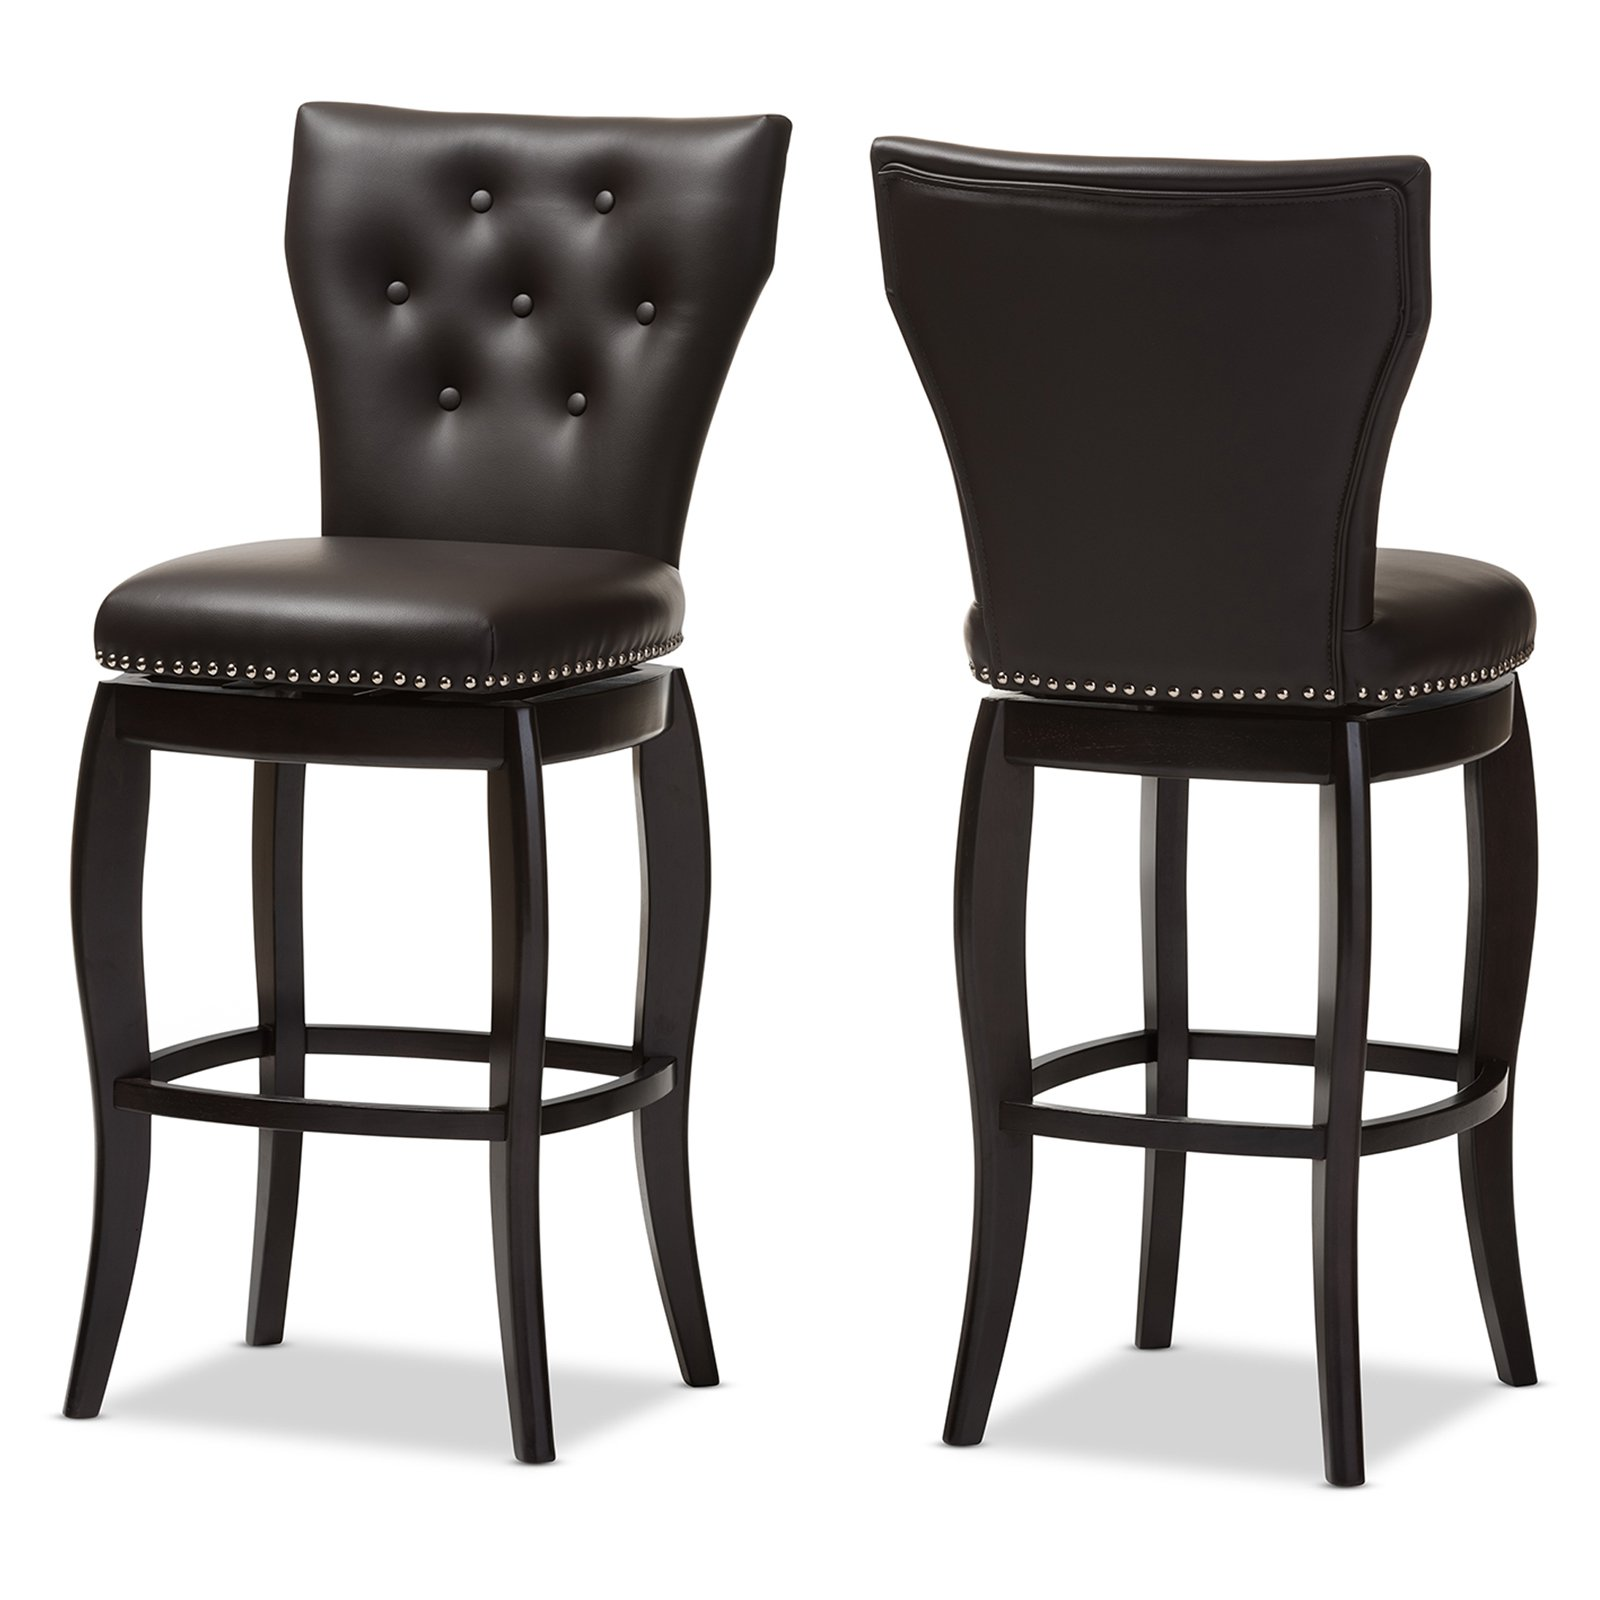 Baxton Studio Leonice Modern and Contemporary Upholstered Button-tufted 29-Inch Swivel Bar Stool, Multiple Colors